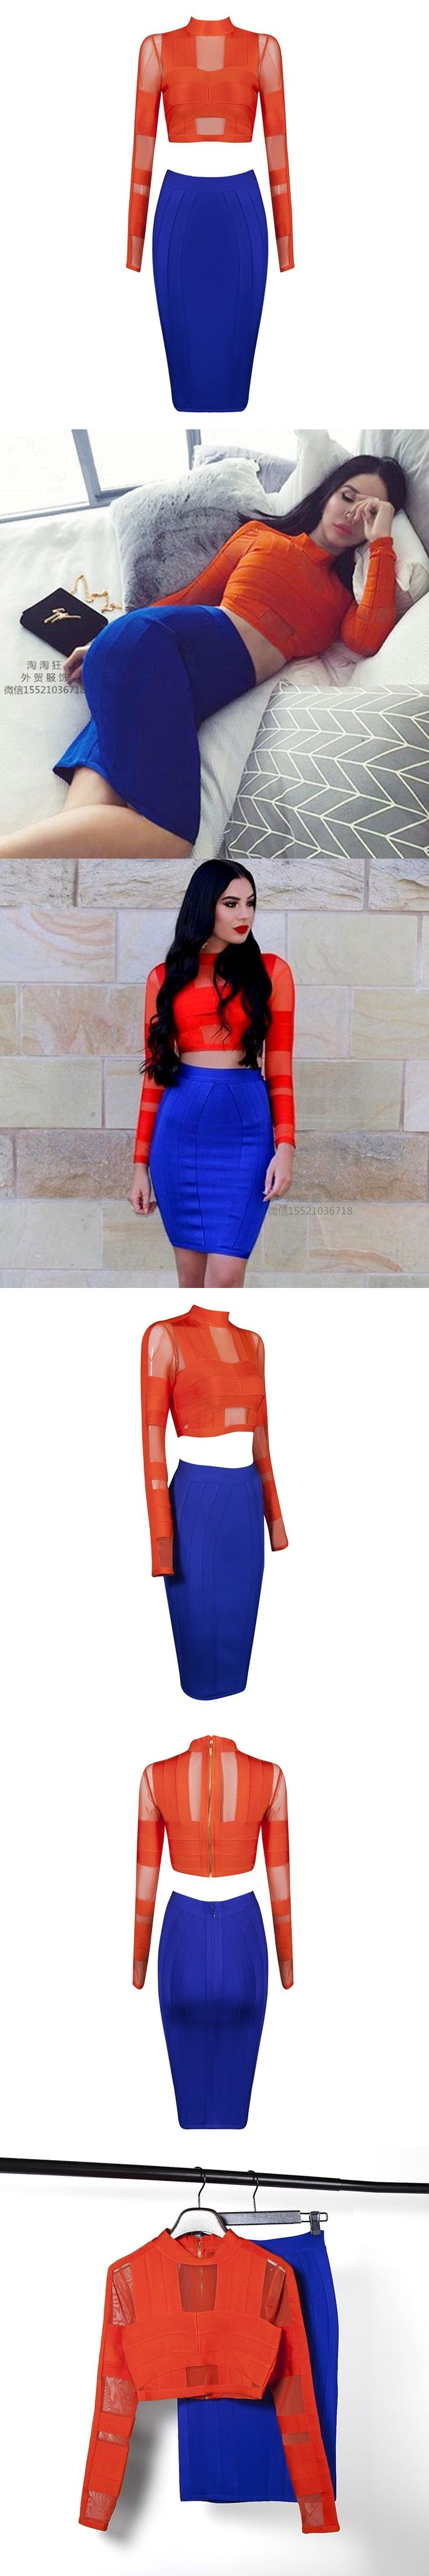 2017 spring orange blue bandage dress high quality long sleeve 2 two piece set dresses vestido formal de las mujeres